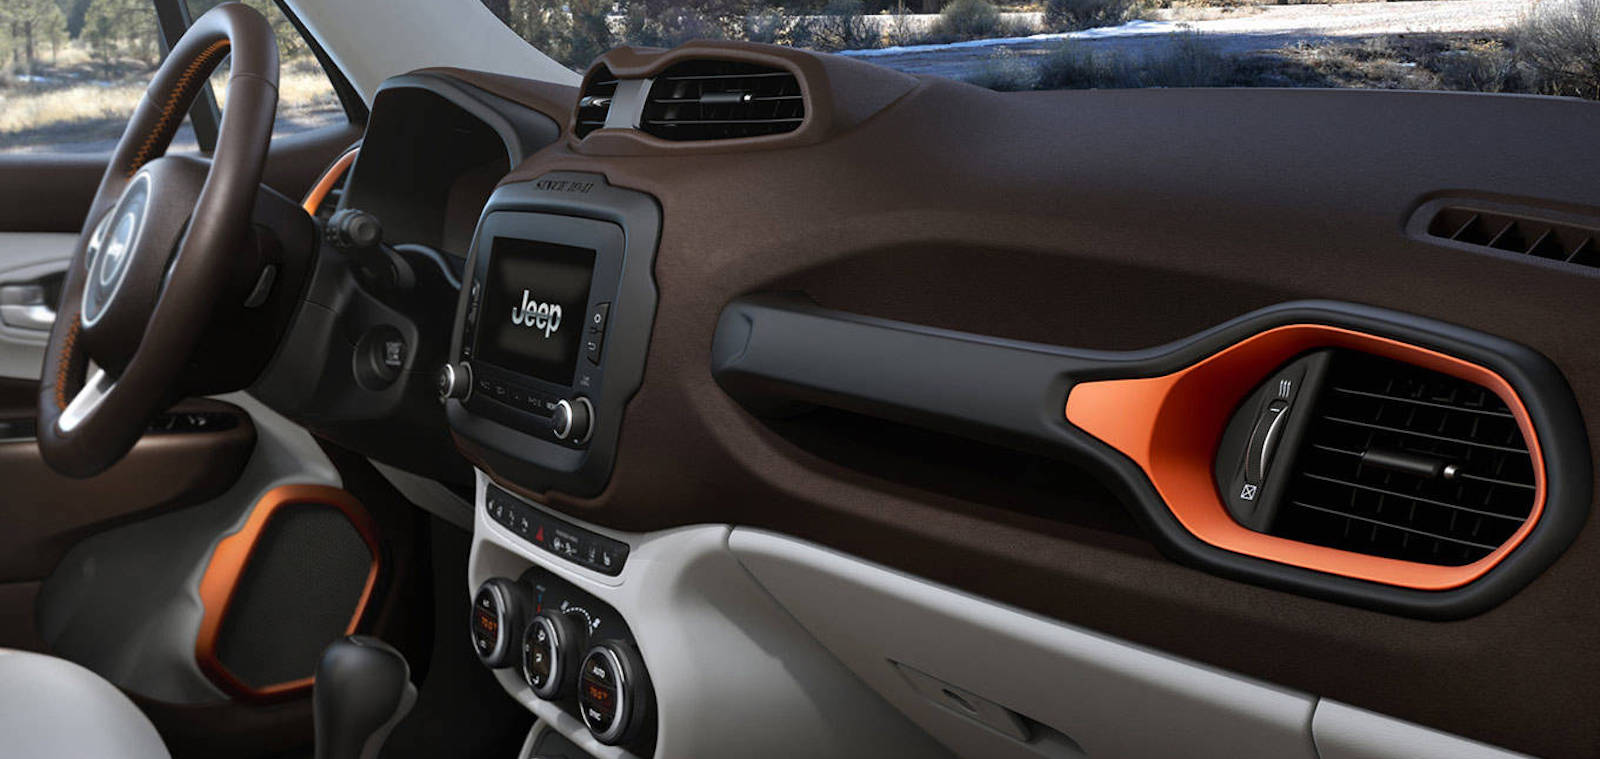 2016 Jeep Renegade Interior design in forest